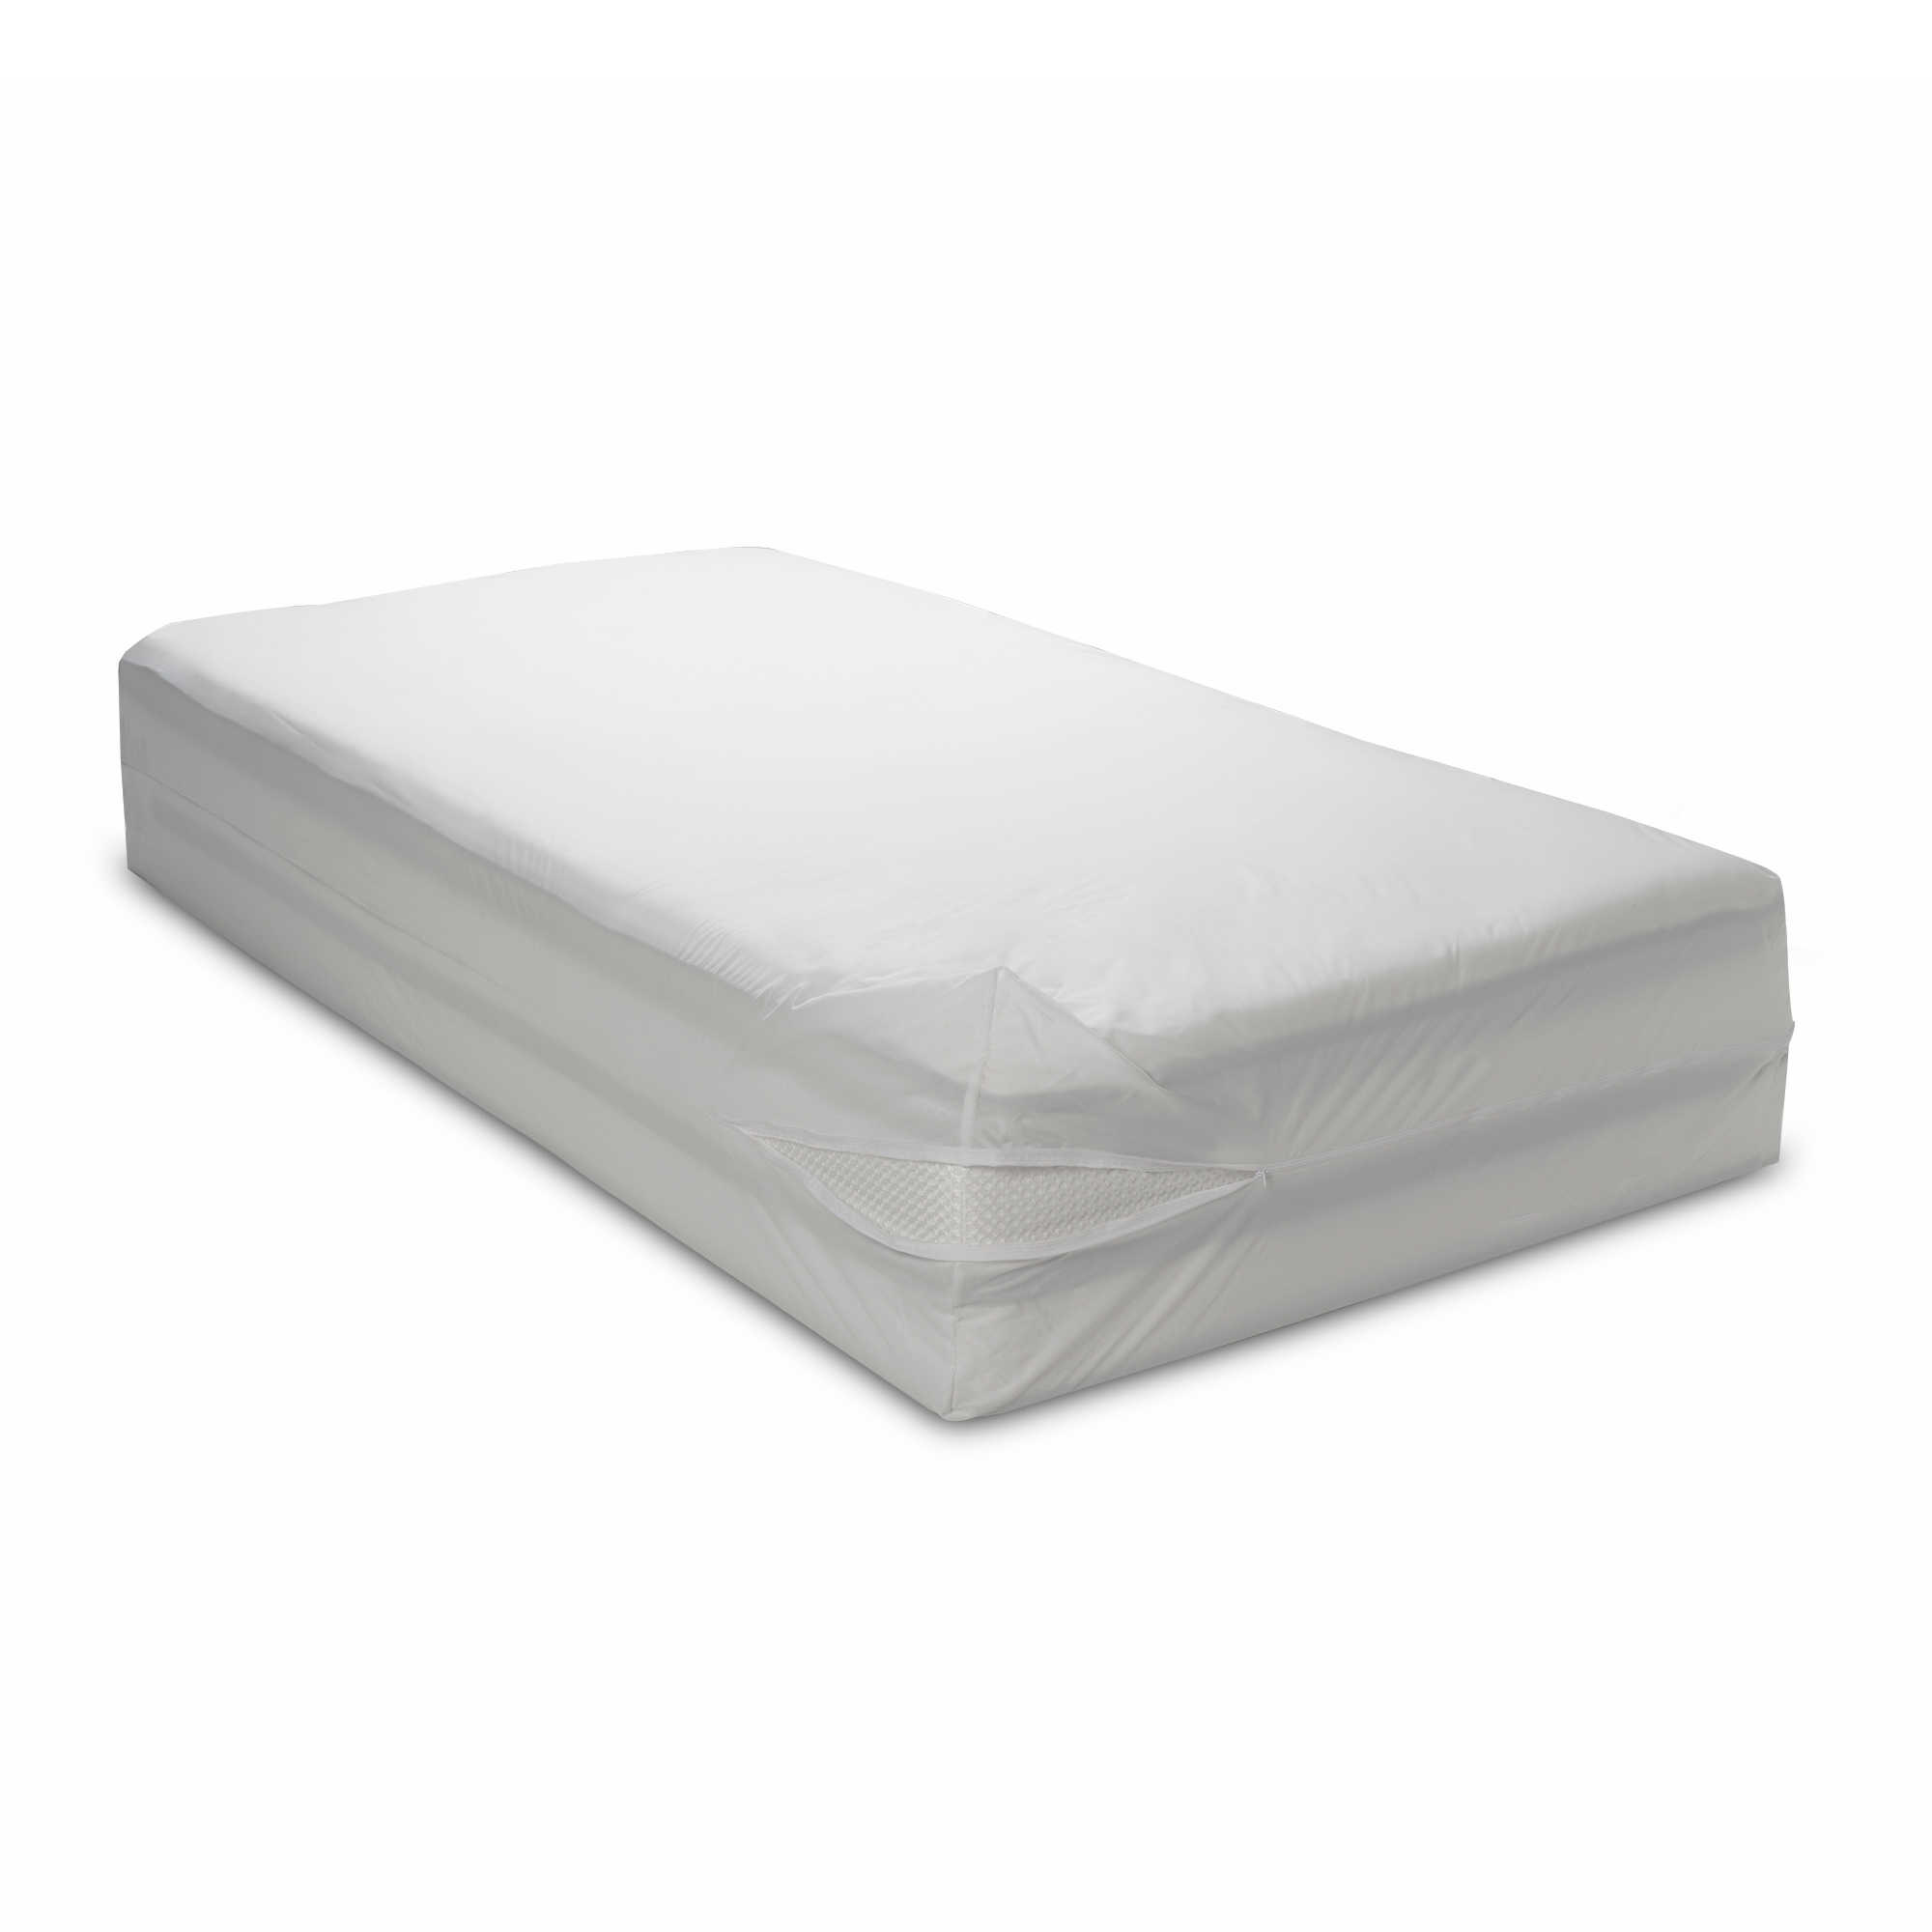 Zippered mattress protector Mattress Topper Water Resistant Washable 16 Bed Bug Blocker Zippered Mattress Cover Protector Walmartcom Walmart Water Resistant Washable 16 Bed Bug Blocker Zippered Mattress Cover